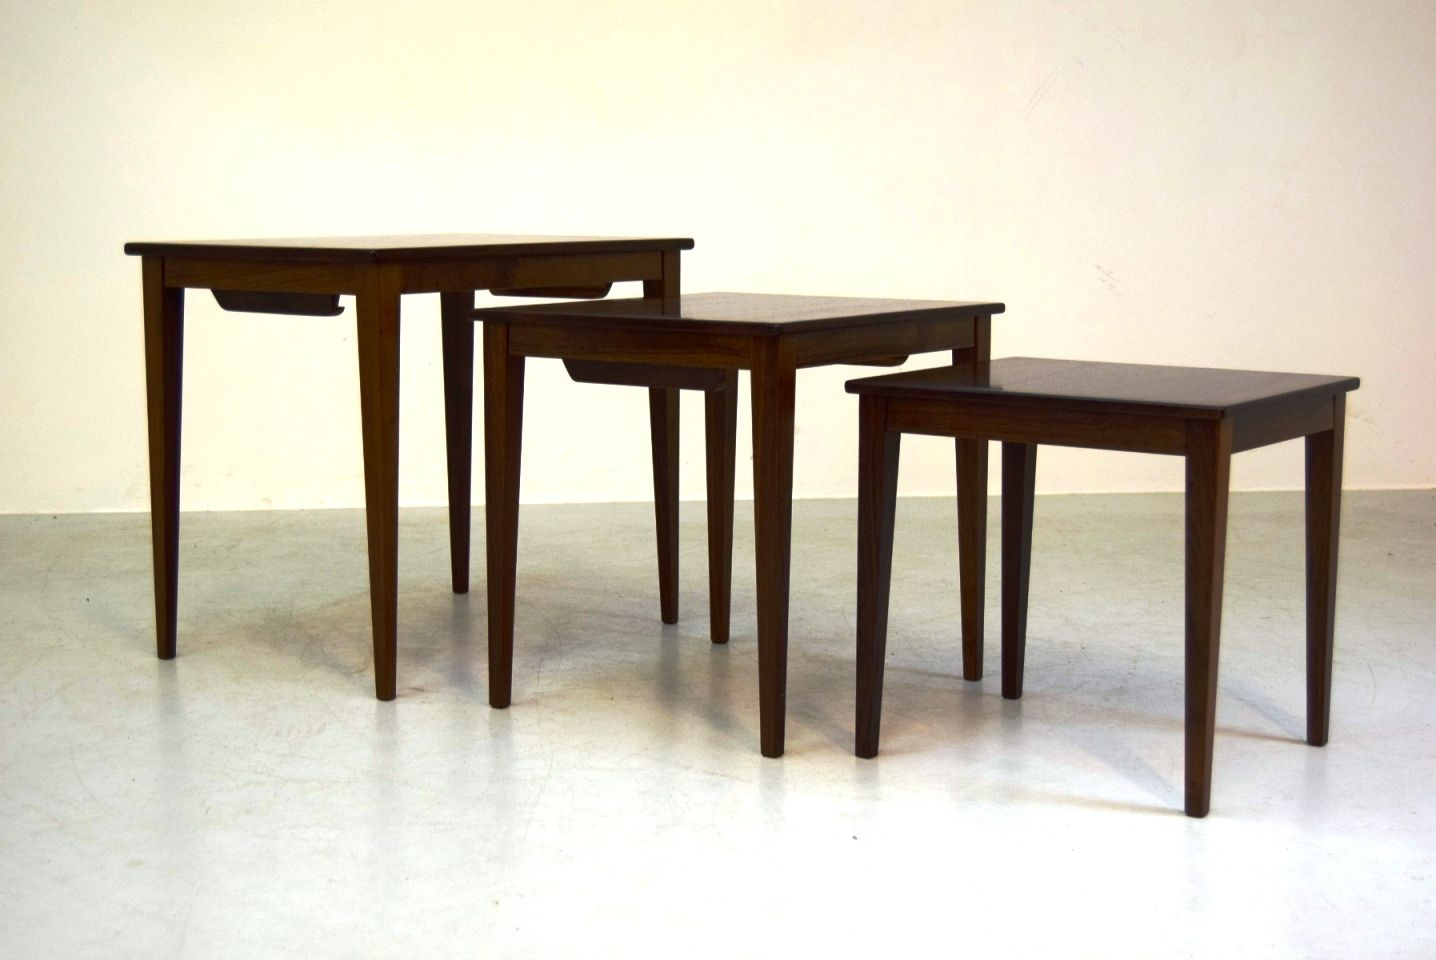 Wonderful image of Vintage Danish Rosewood Nesting Tables from VM Møbler Set of 3 for  with #301C0F color and 1436x960 pixels